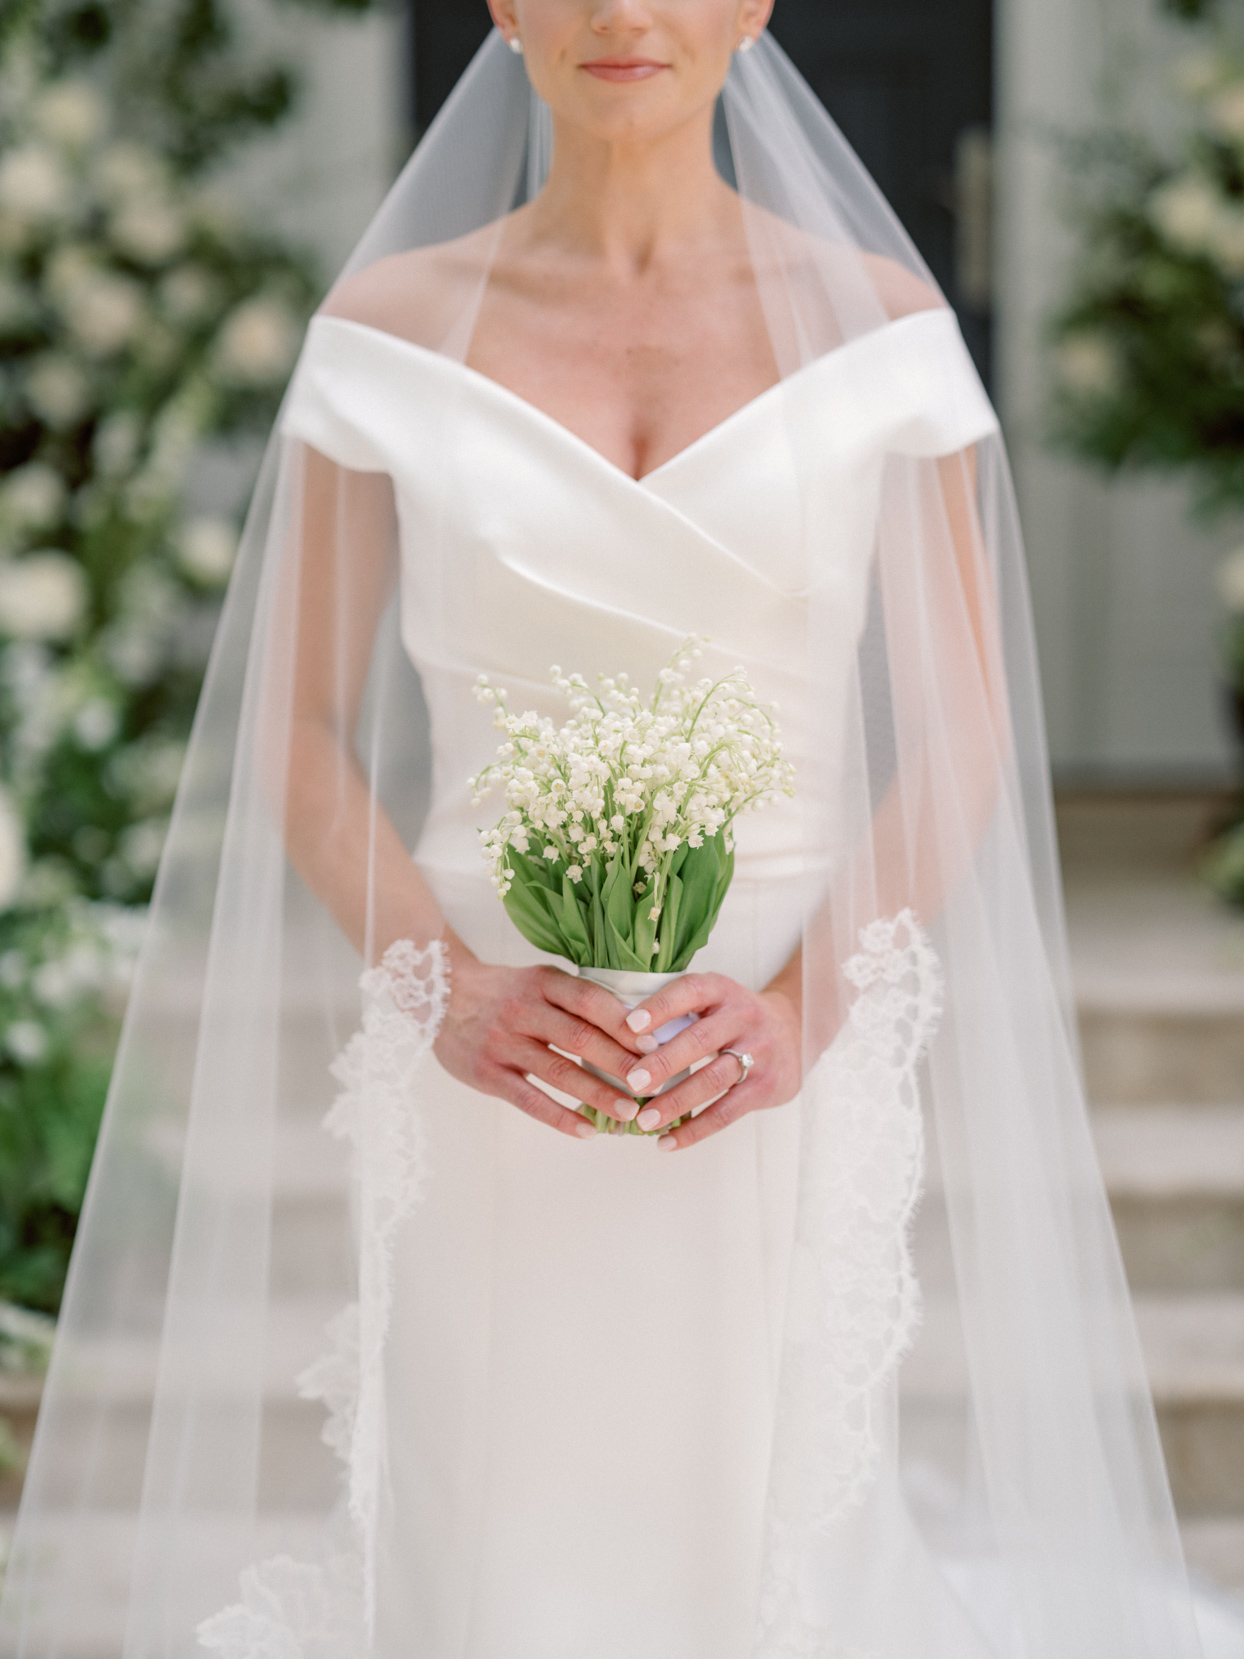 bride wearing off the shoulder dress with long white veil holding white lily of the valley bouquet